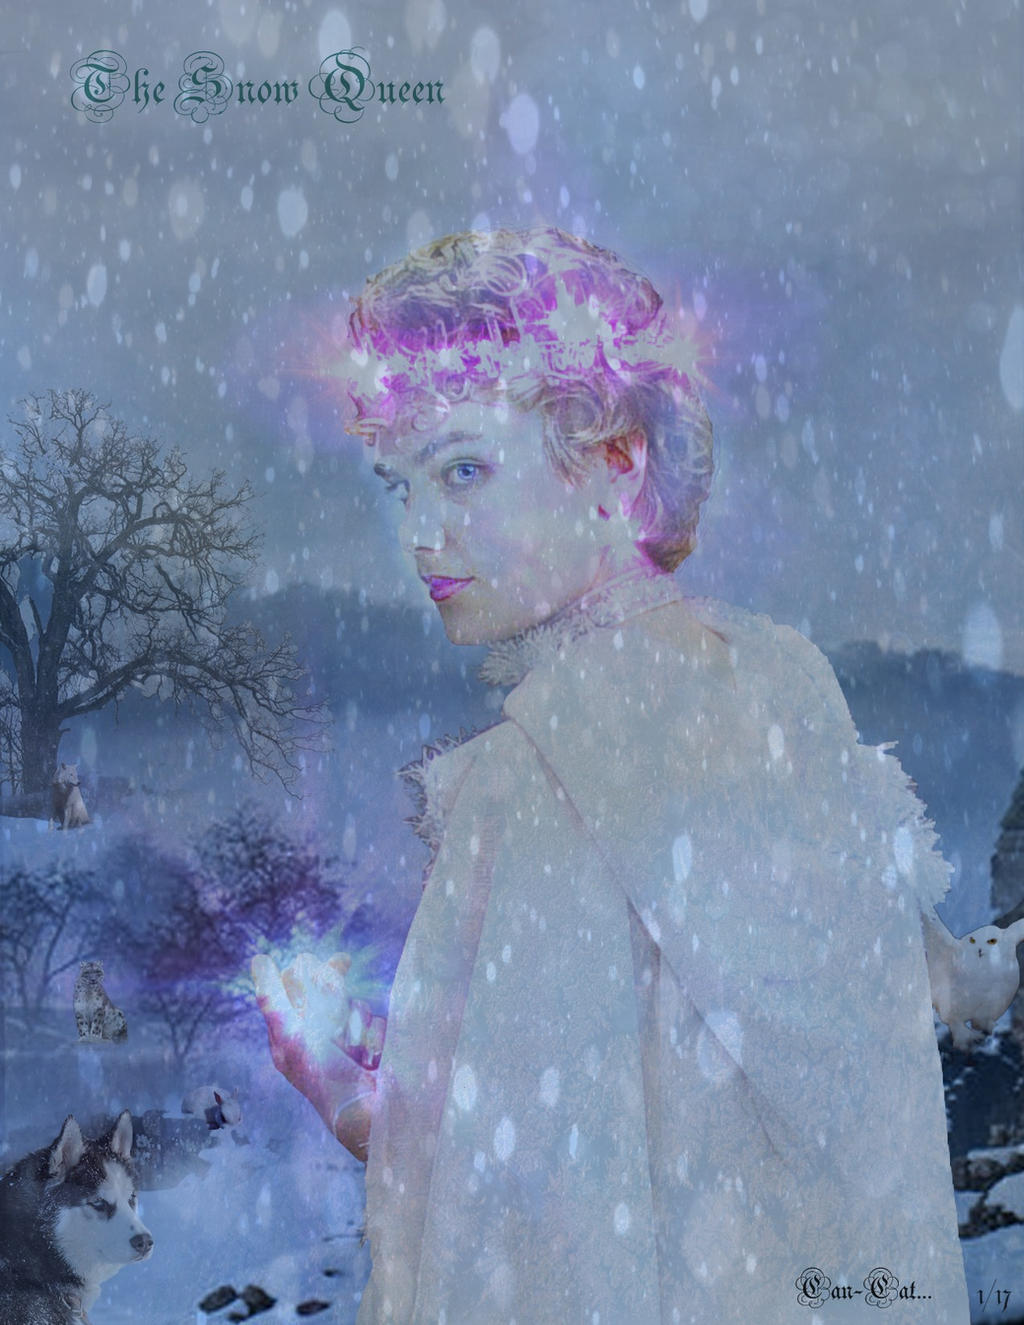 The Snow Queen by Can-Cat